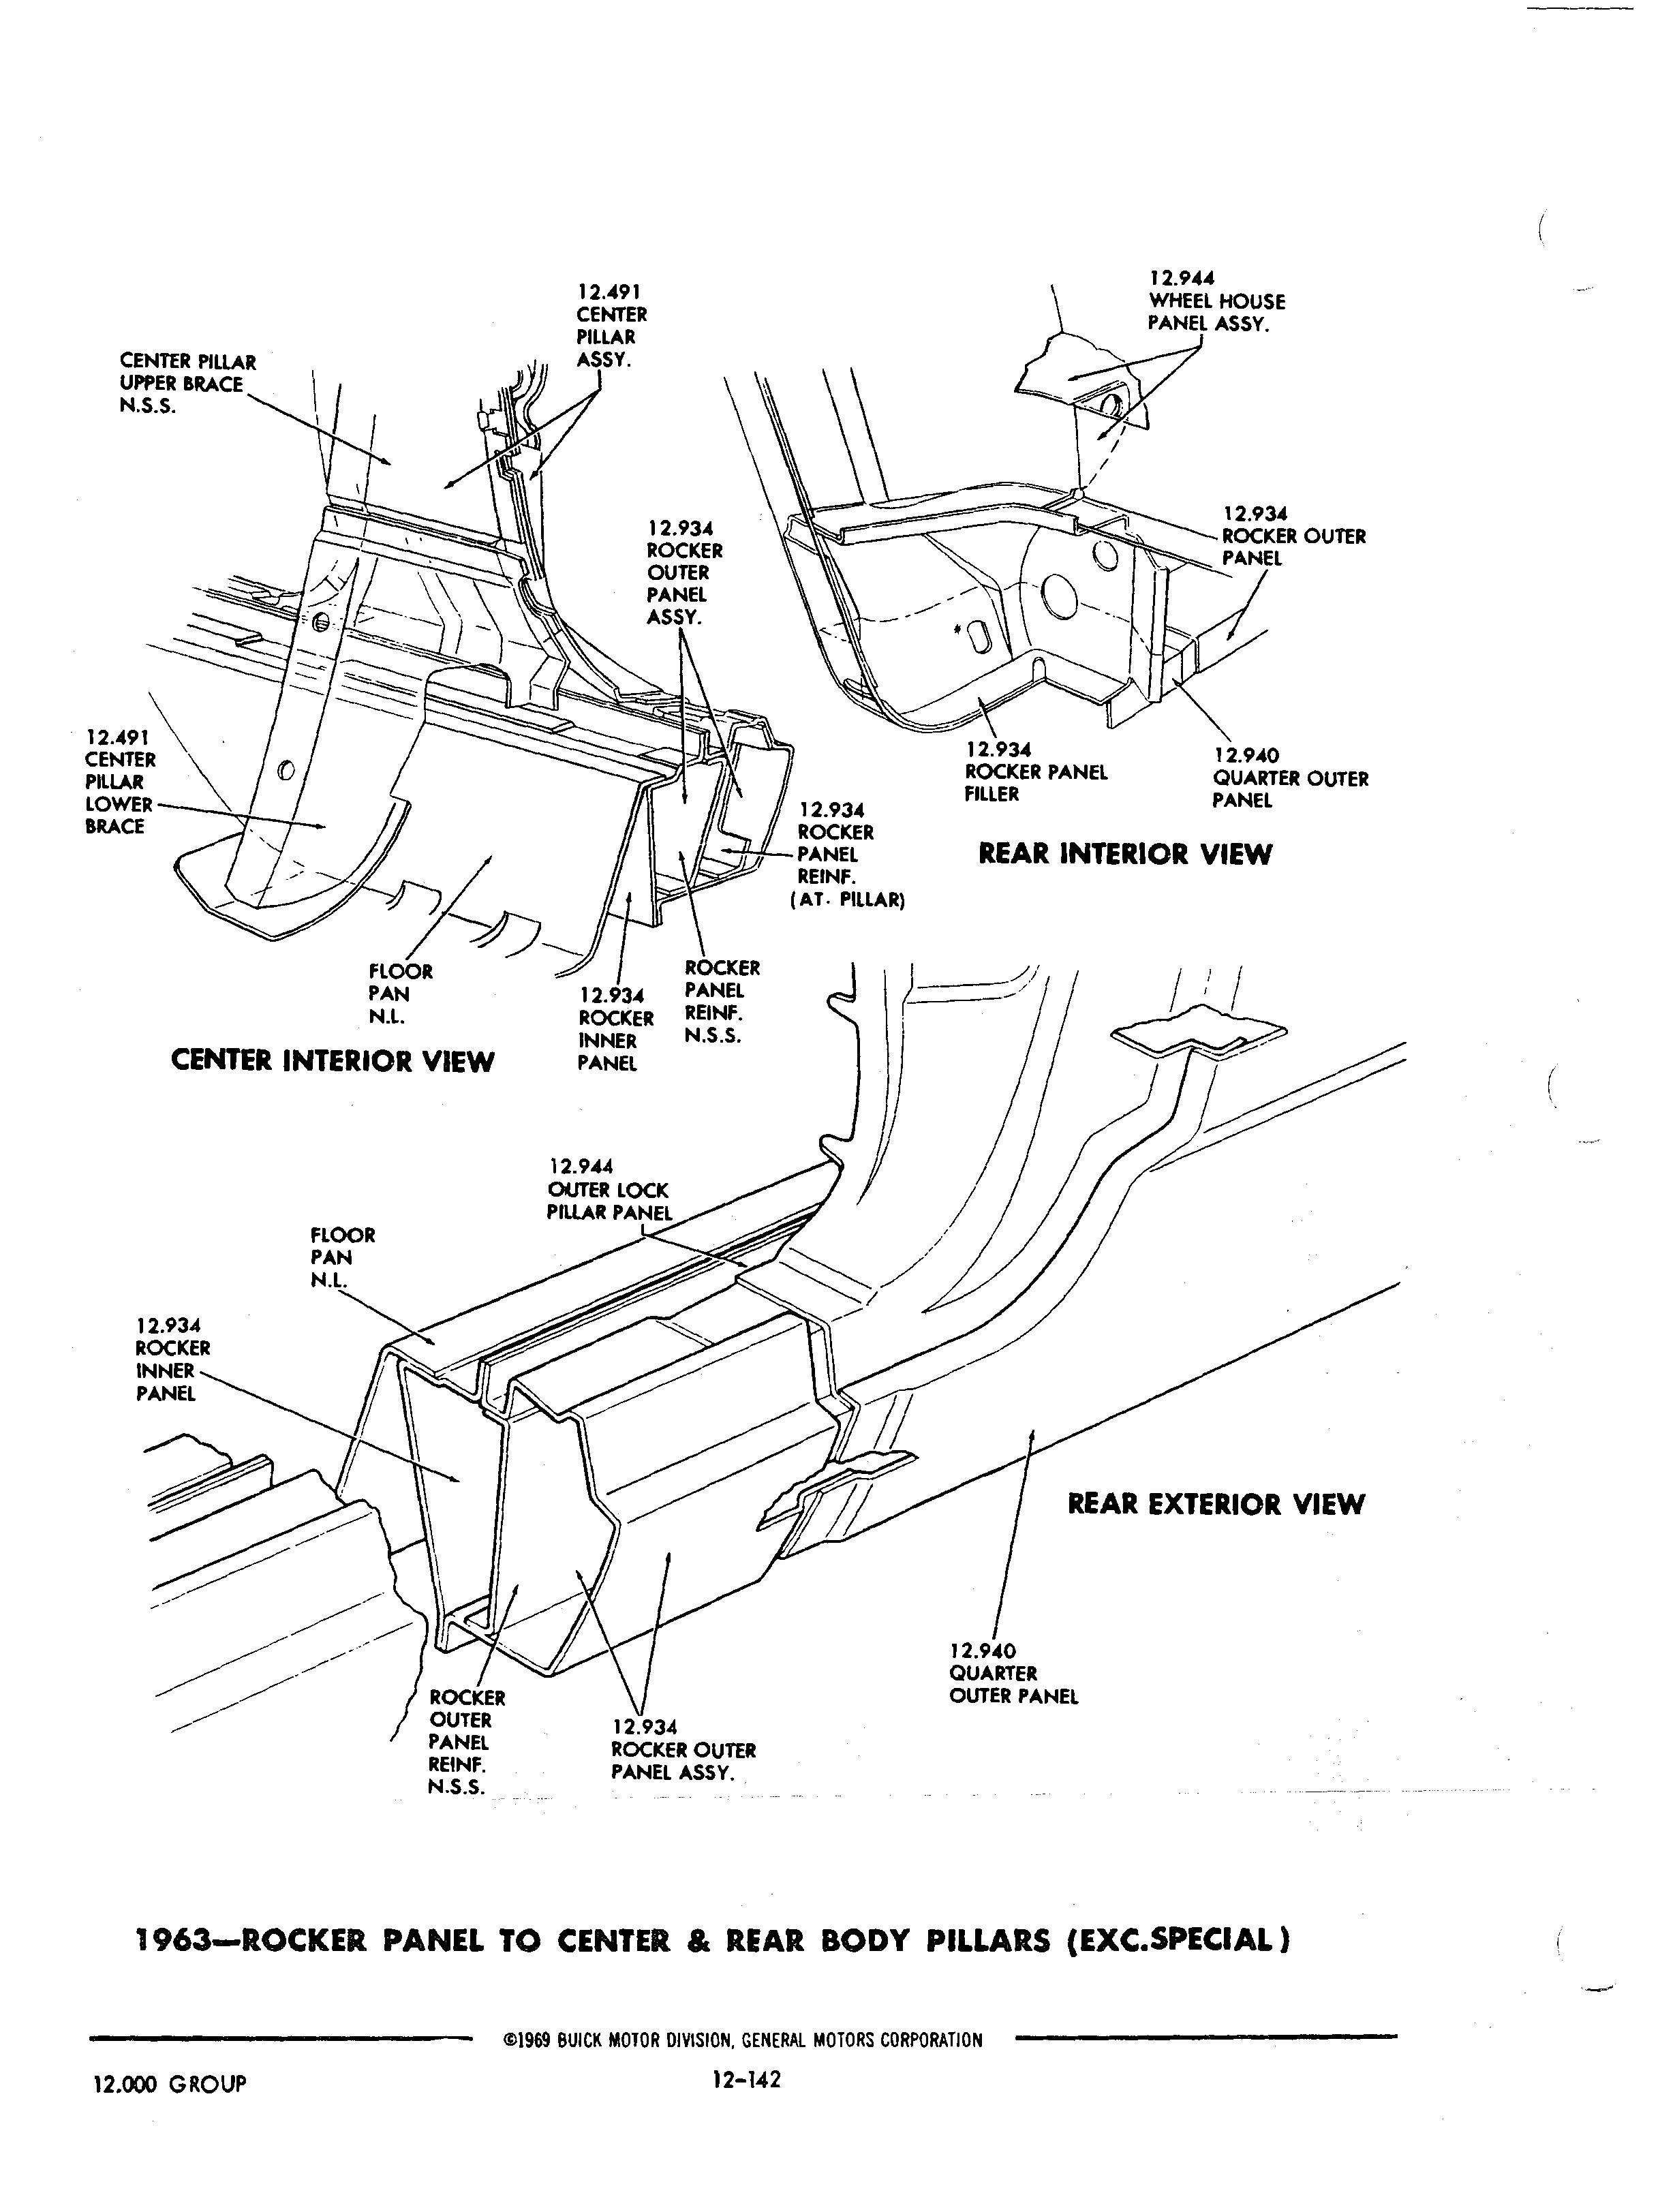 Buick 1940-1972 Parts illustrations / Buick Chassis And